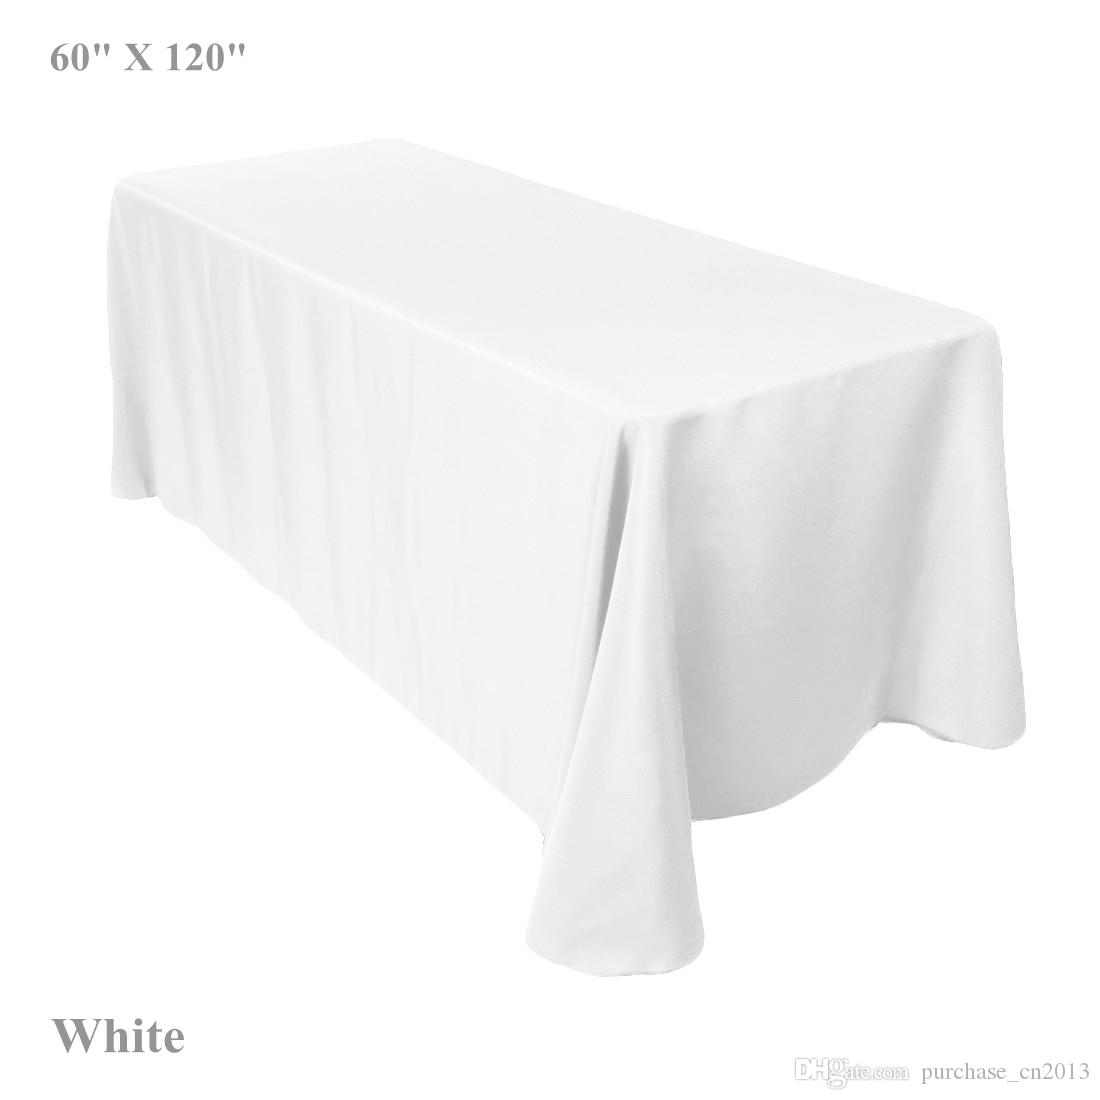 Table Cloth White Ivory Black 60x 120 Rectangular Polyester Table Cover  Wedding Restaurant Banquet Party By Fedex White Cotton Tablecloth Round  White ...